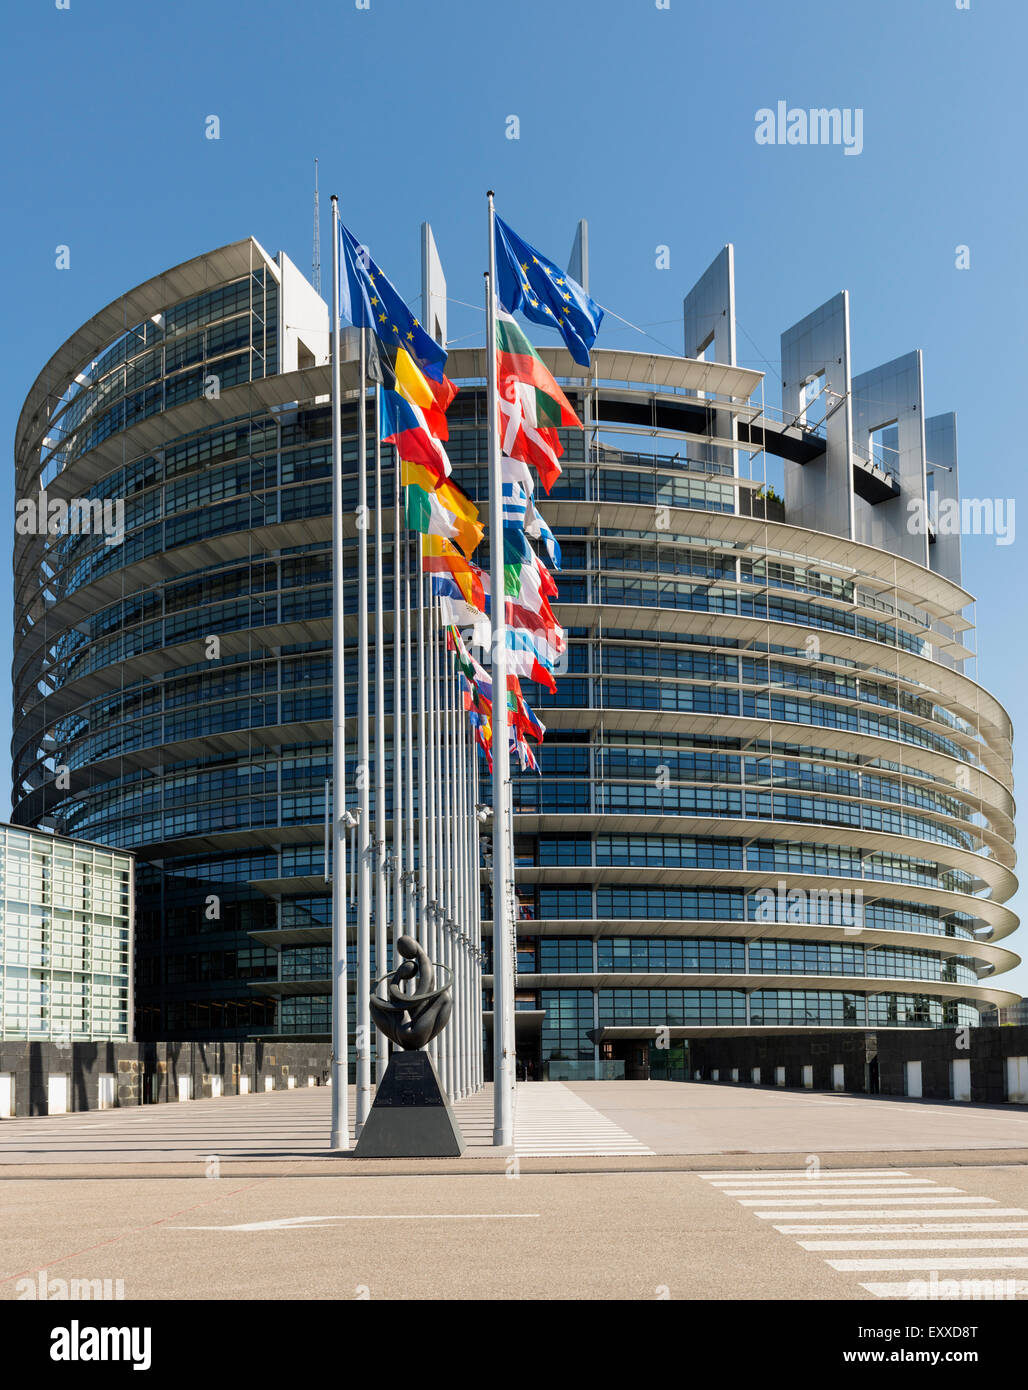 The European Parliament building, Strasbourg, France, Europe - Stock Image